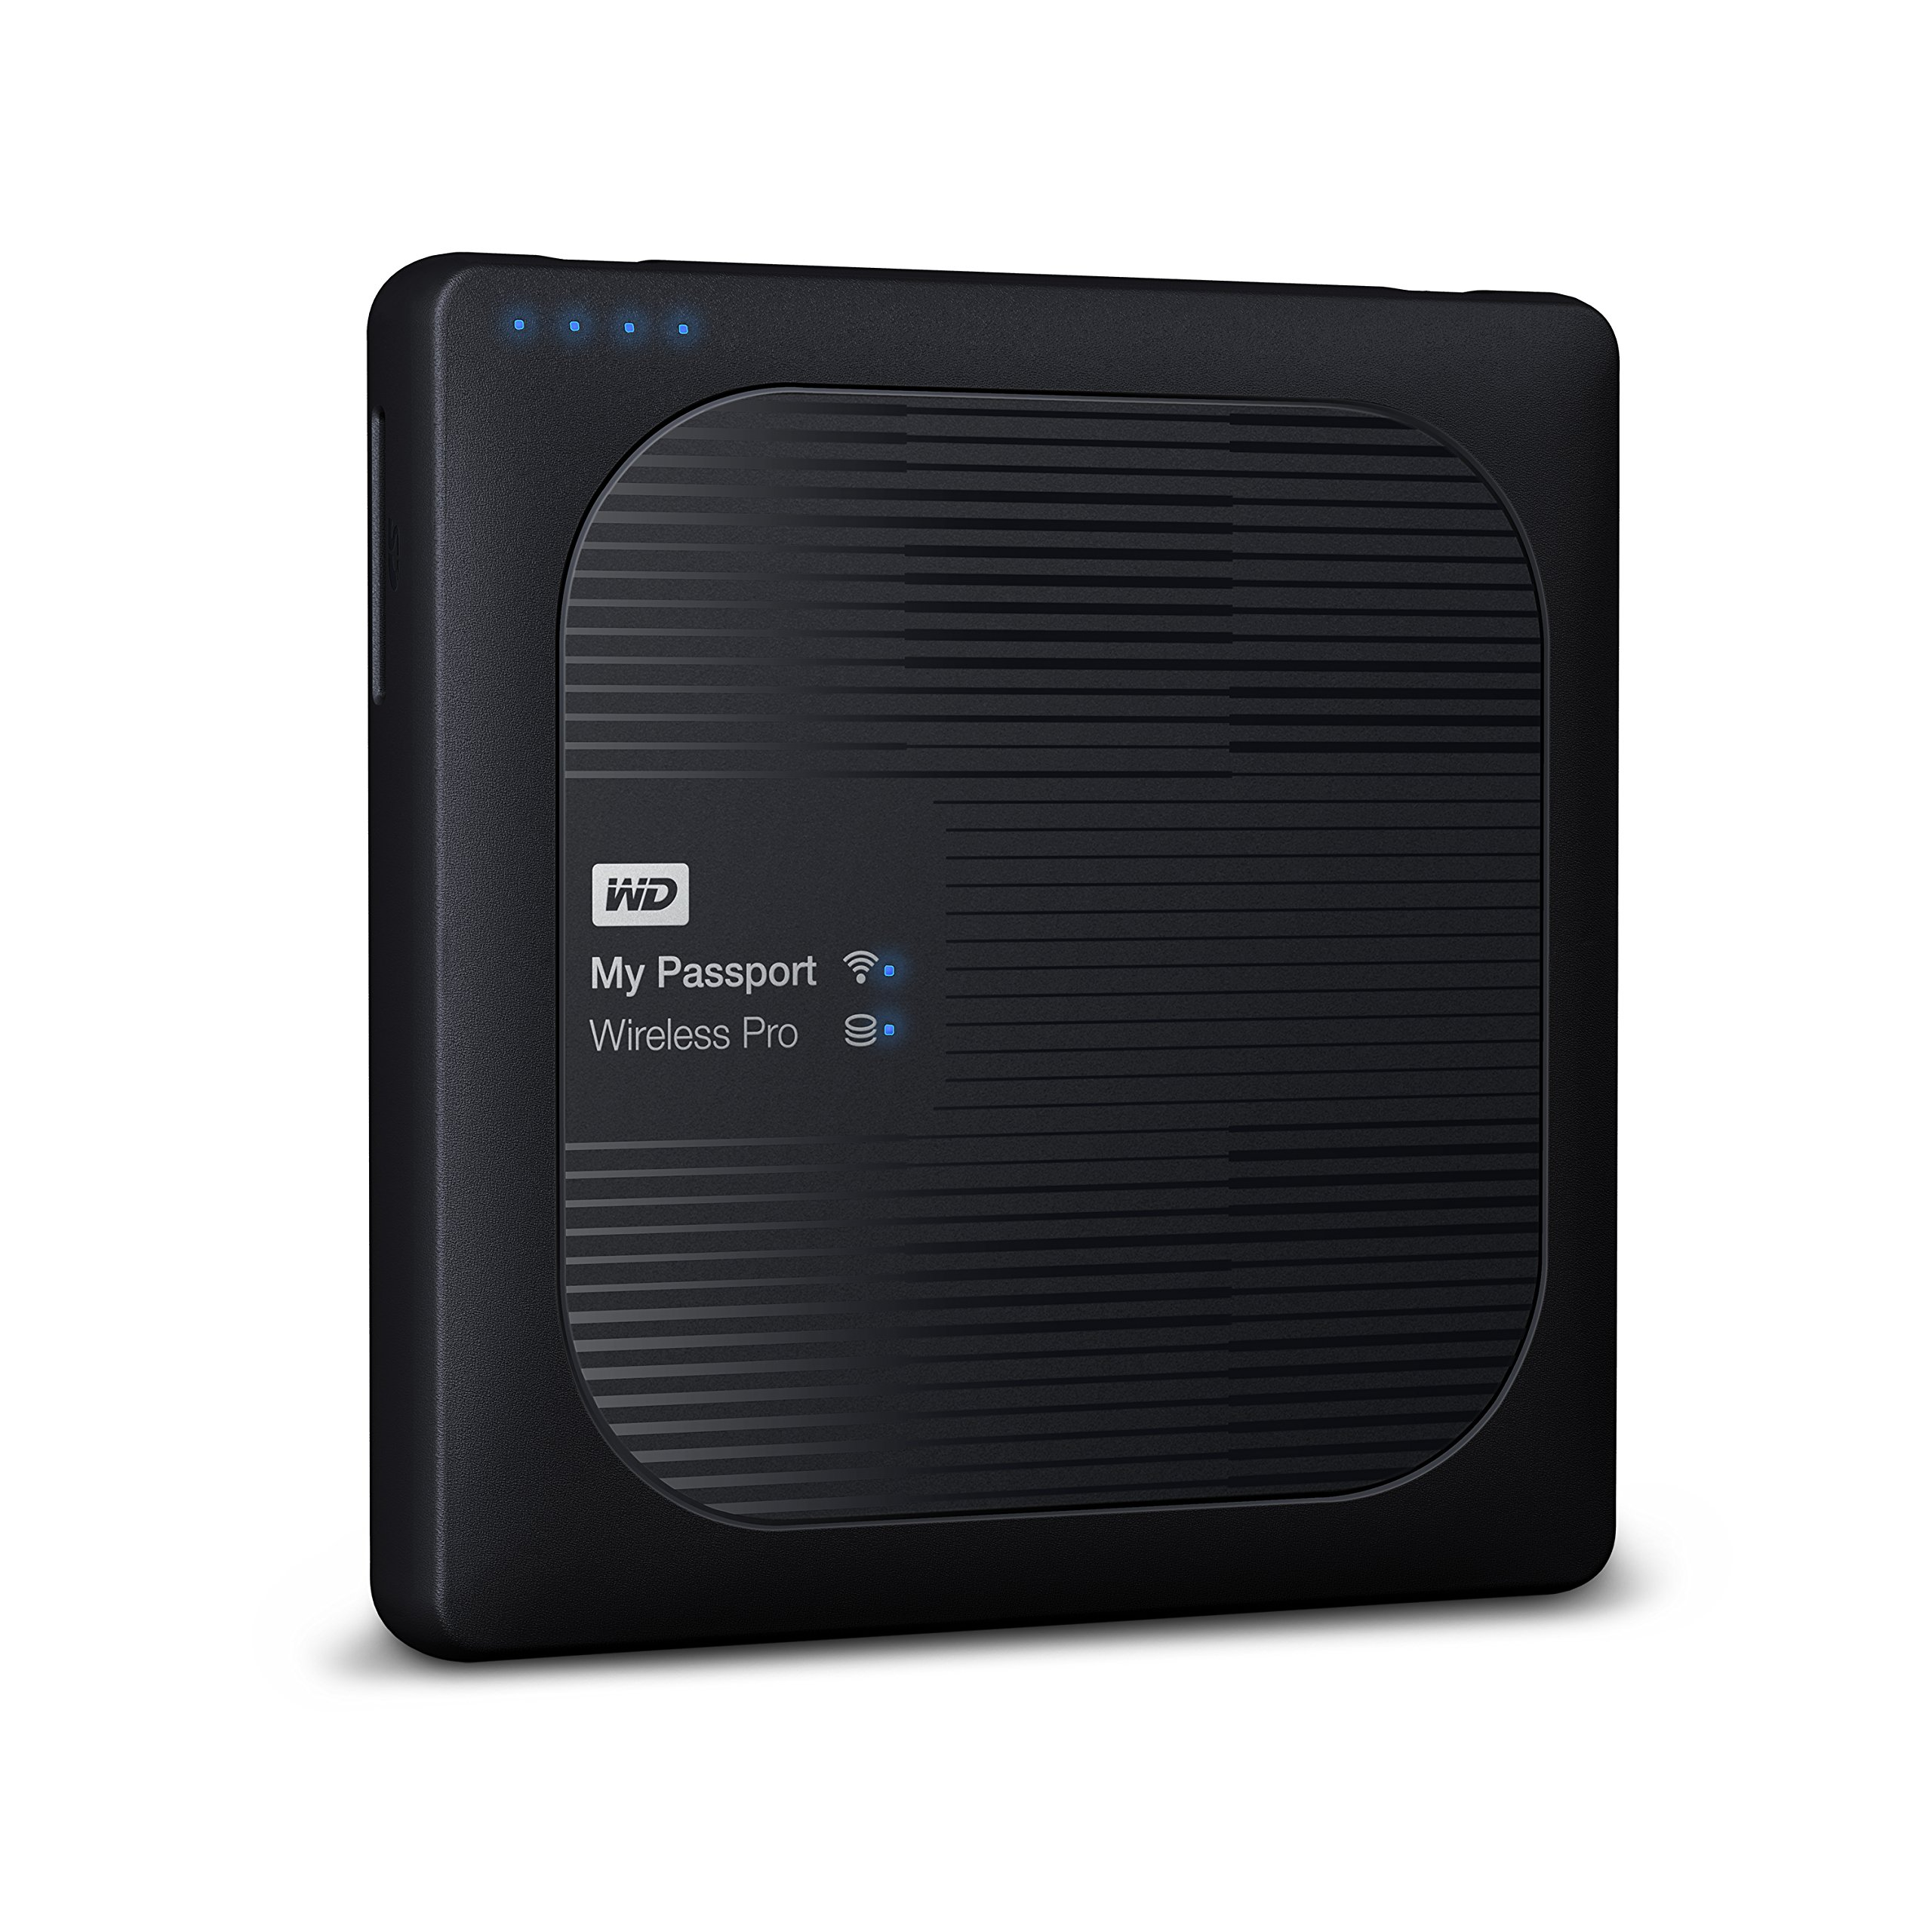 WD 4TB My Passport Wireless Pro Portable external Hard Drive - WiFi USB 3.0 - WDBSMT0040BBK-NESN